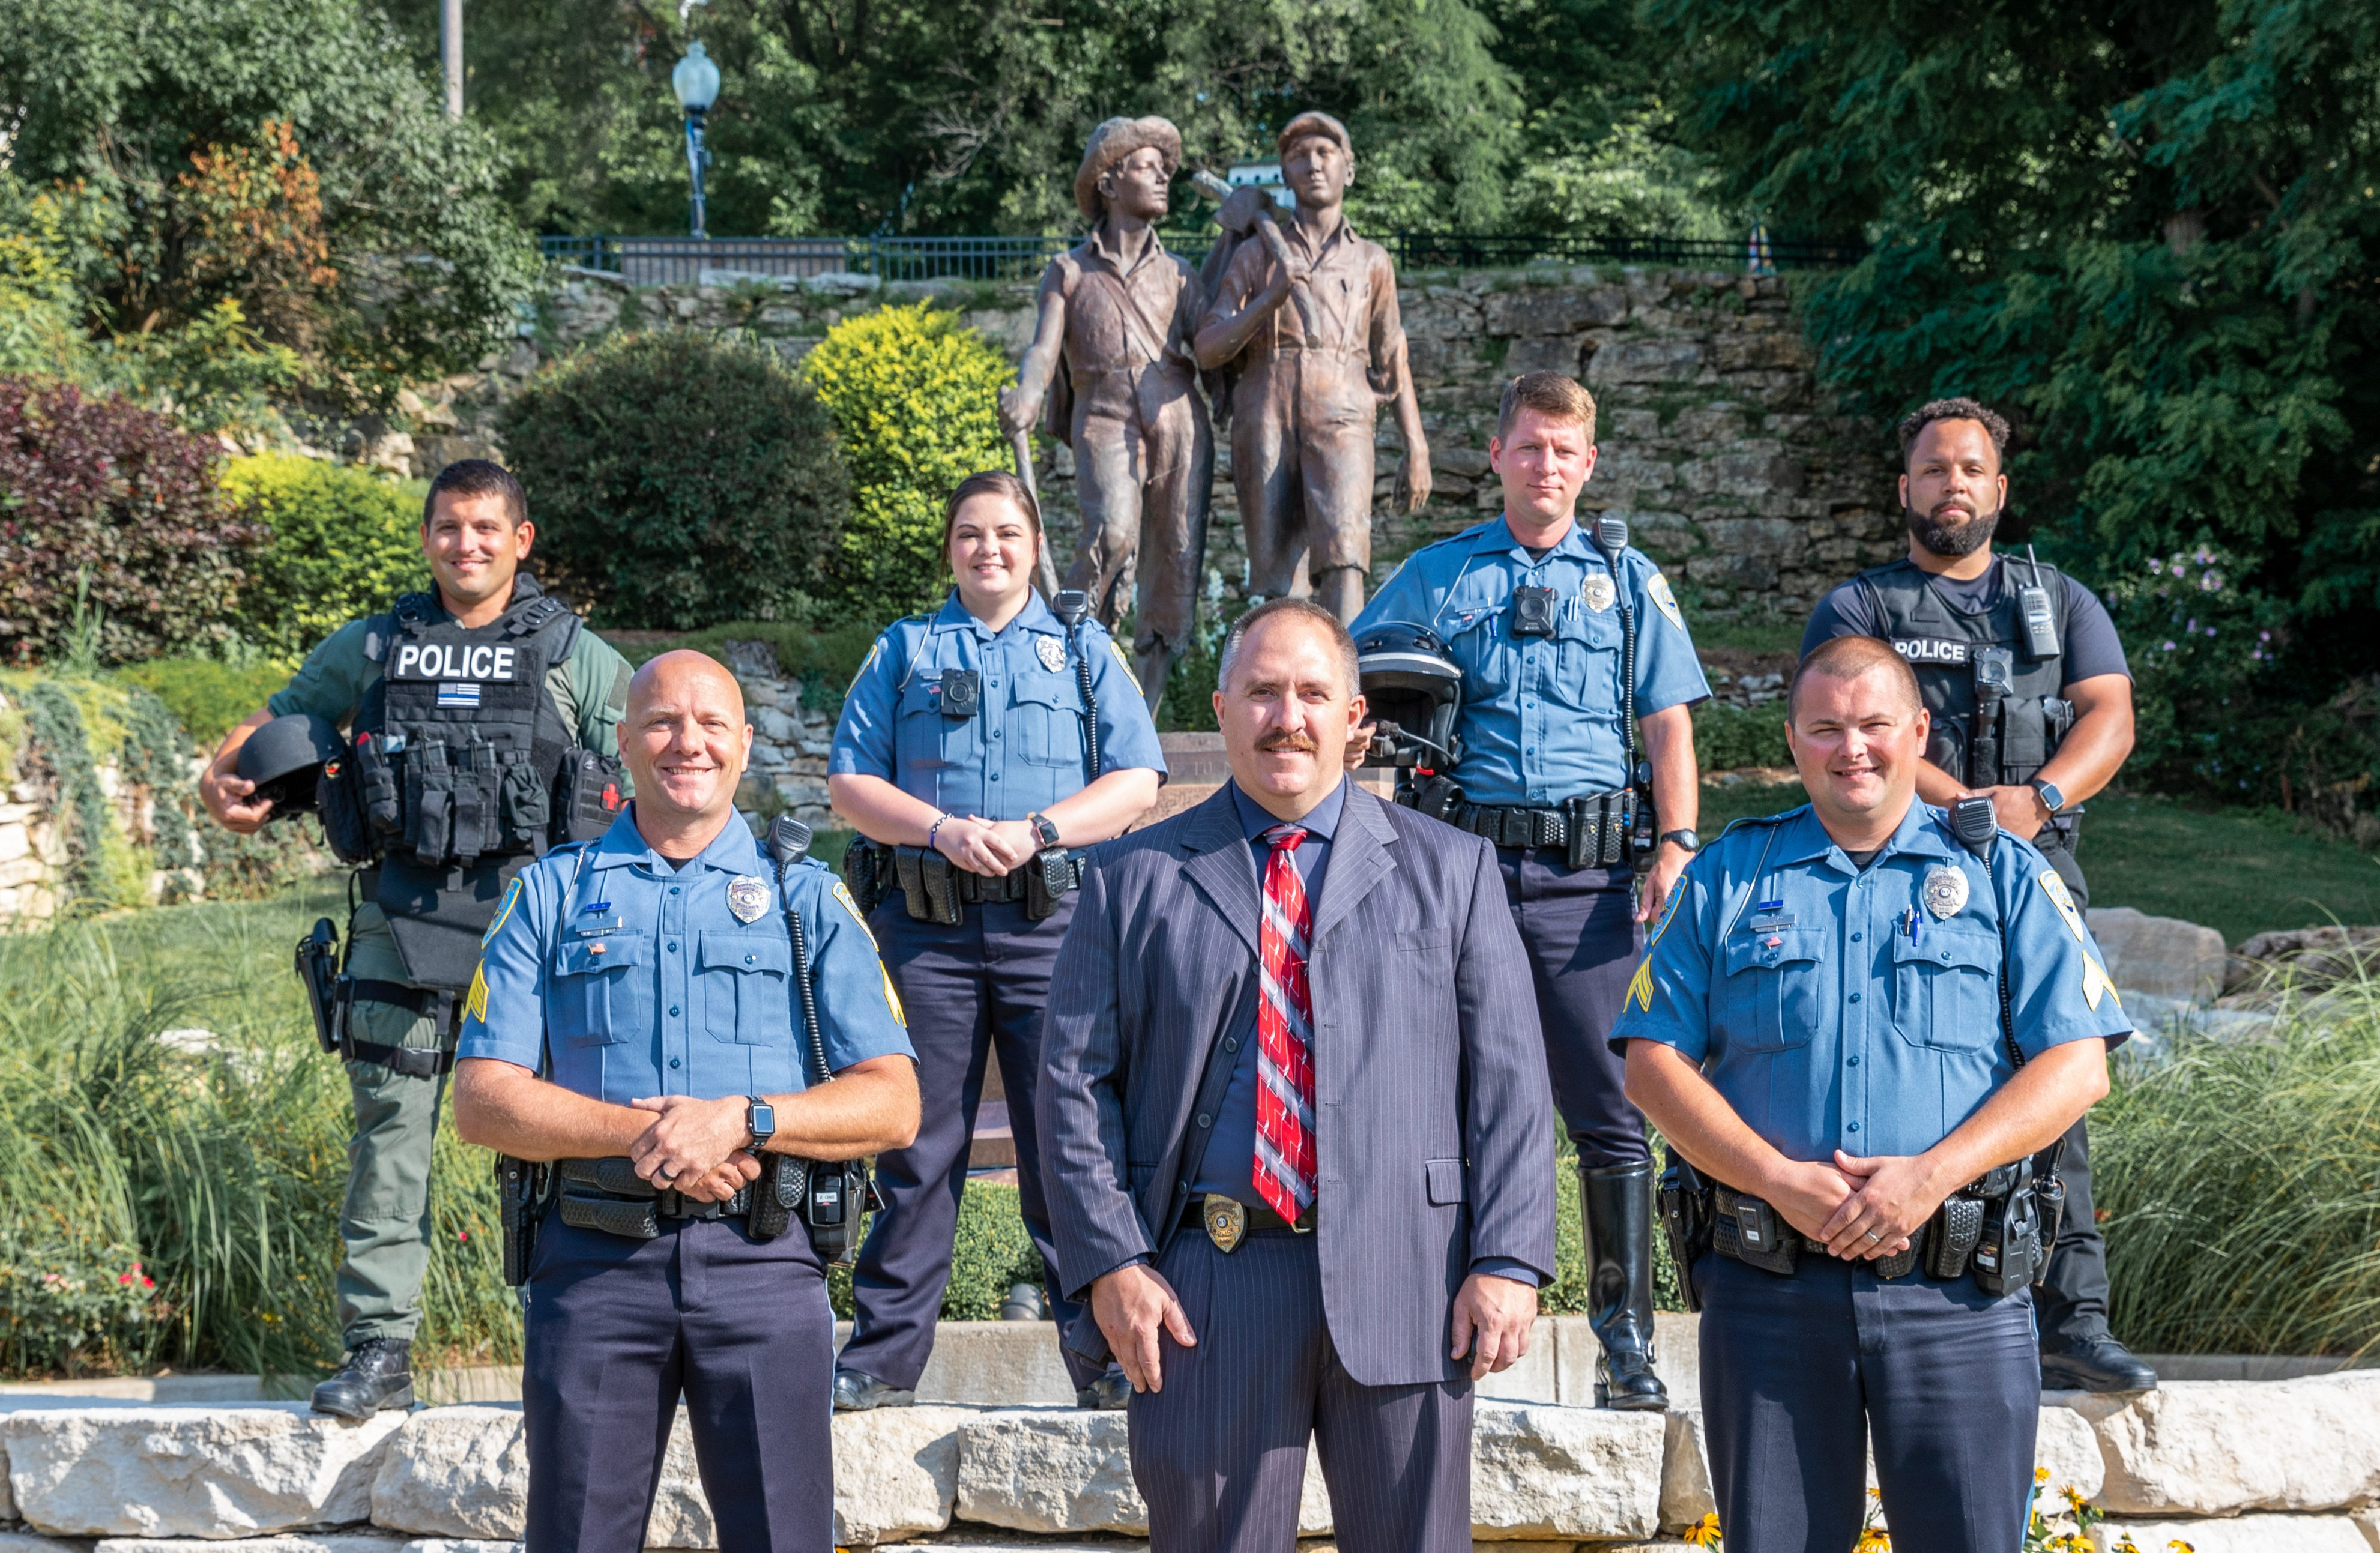 Employment for Hannibal Police Officers